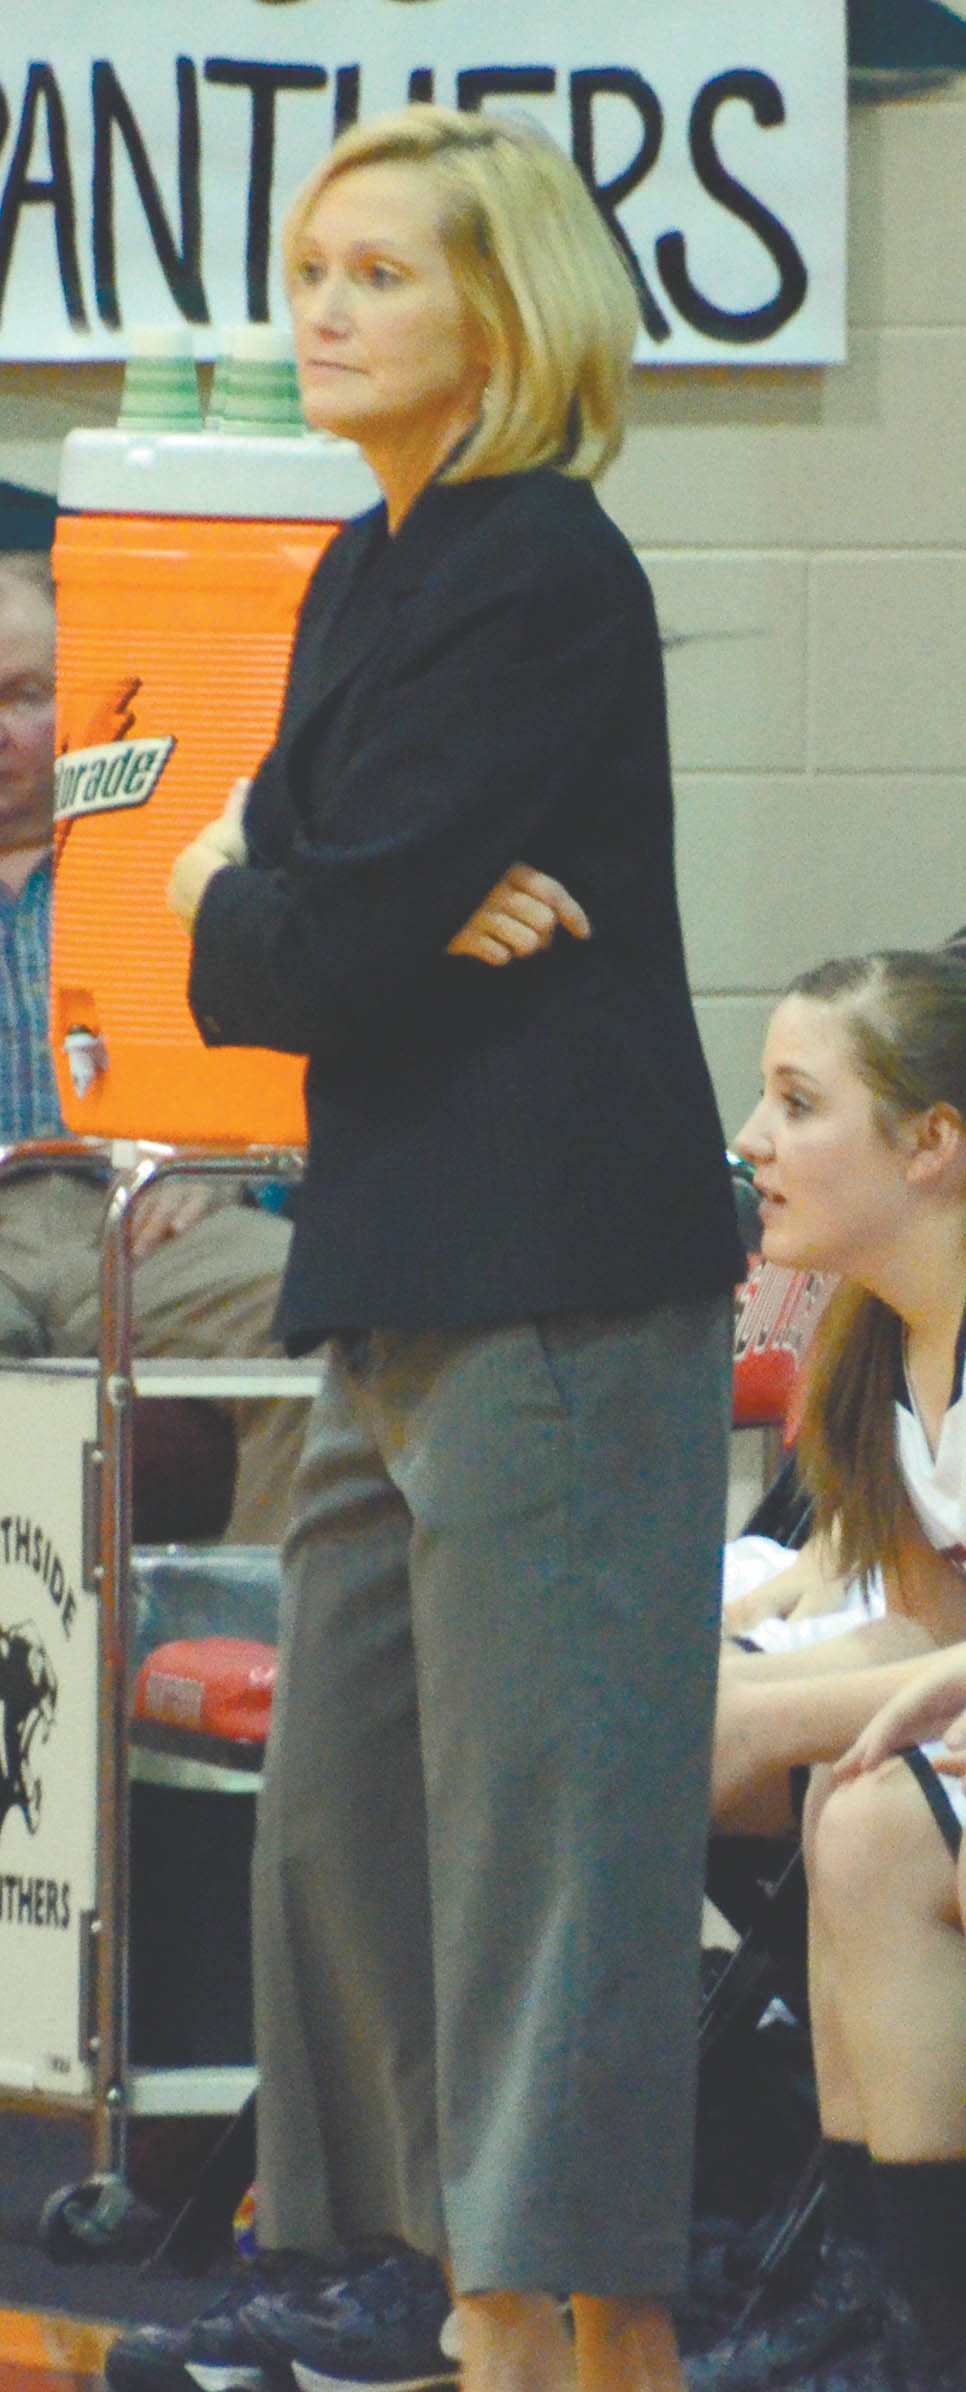 Kim Nails notches 500th career victory | The Messenger